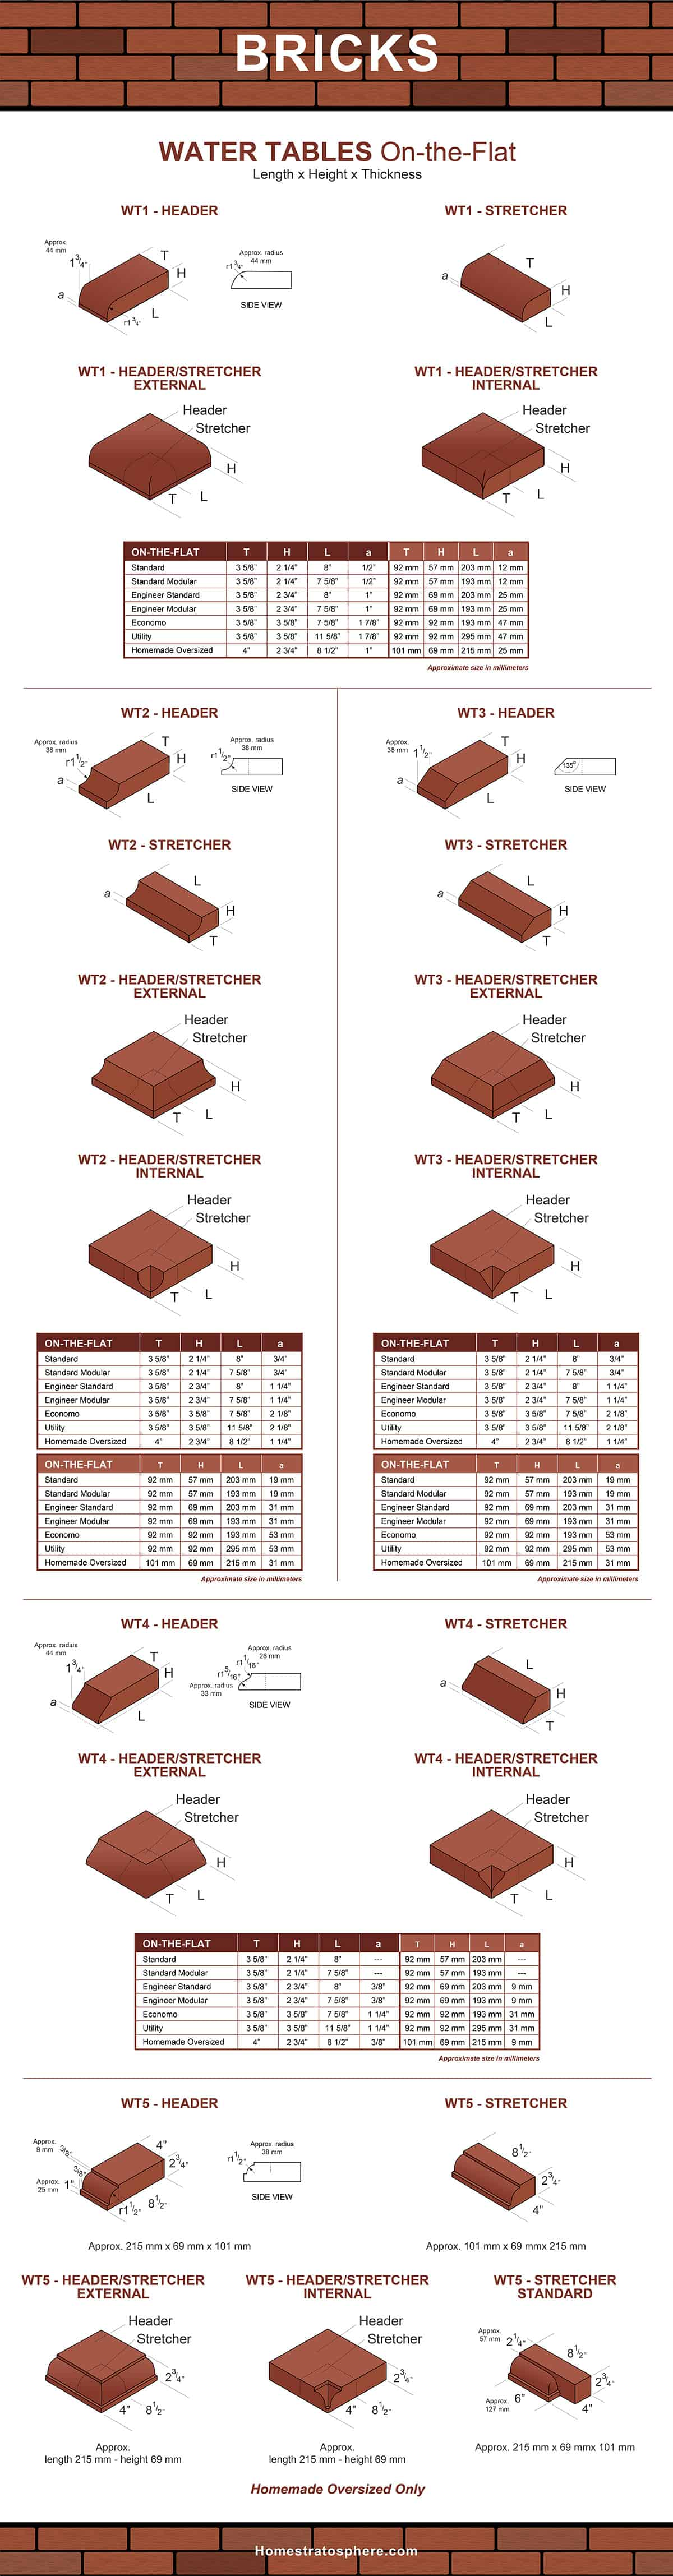 Water Table Bricks - on the flat - sizes and dimensions chart